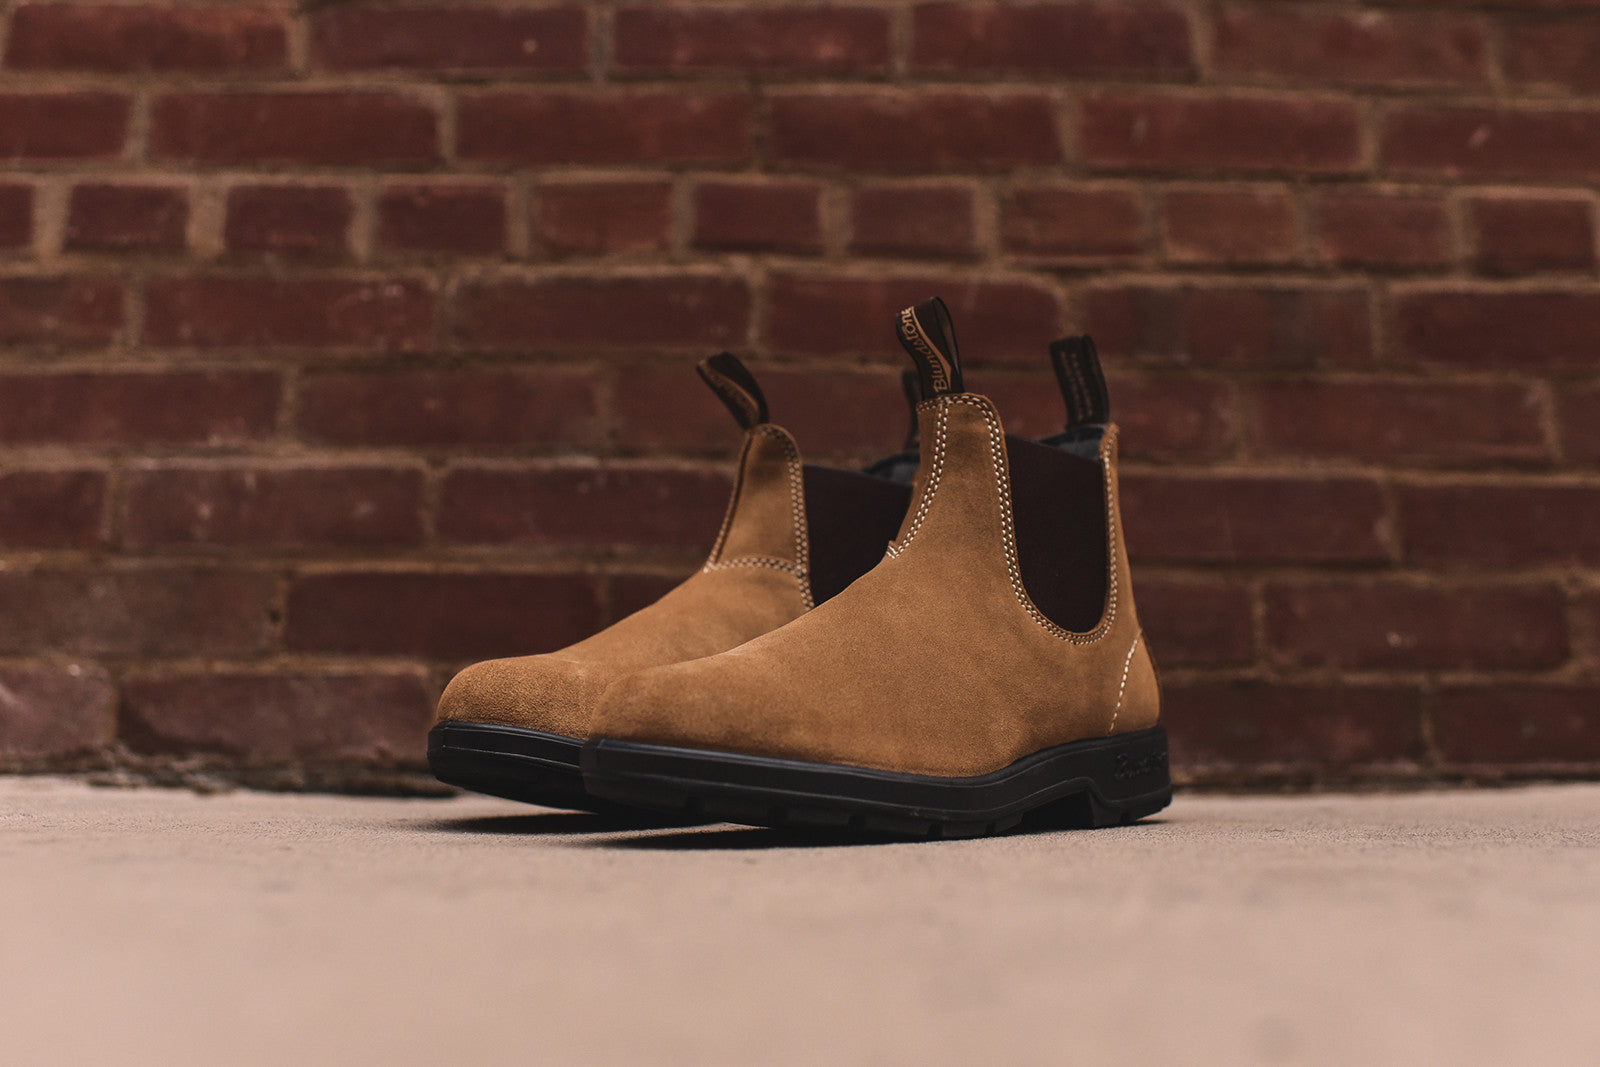 Blundstone 587 Boot - Sand